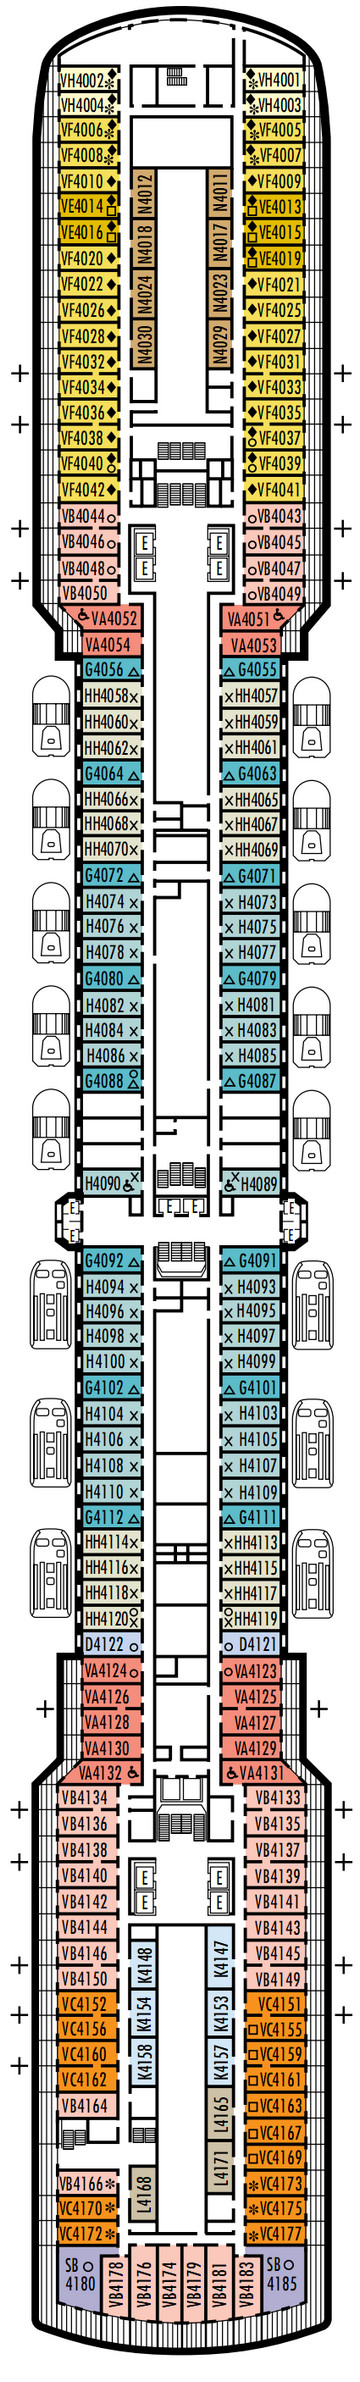 Noordam Deck 4 - Upper Promenade   layout